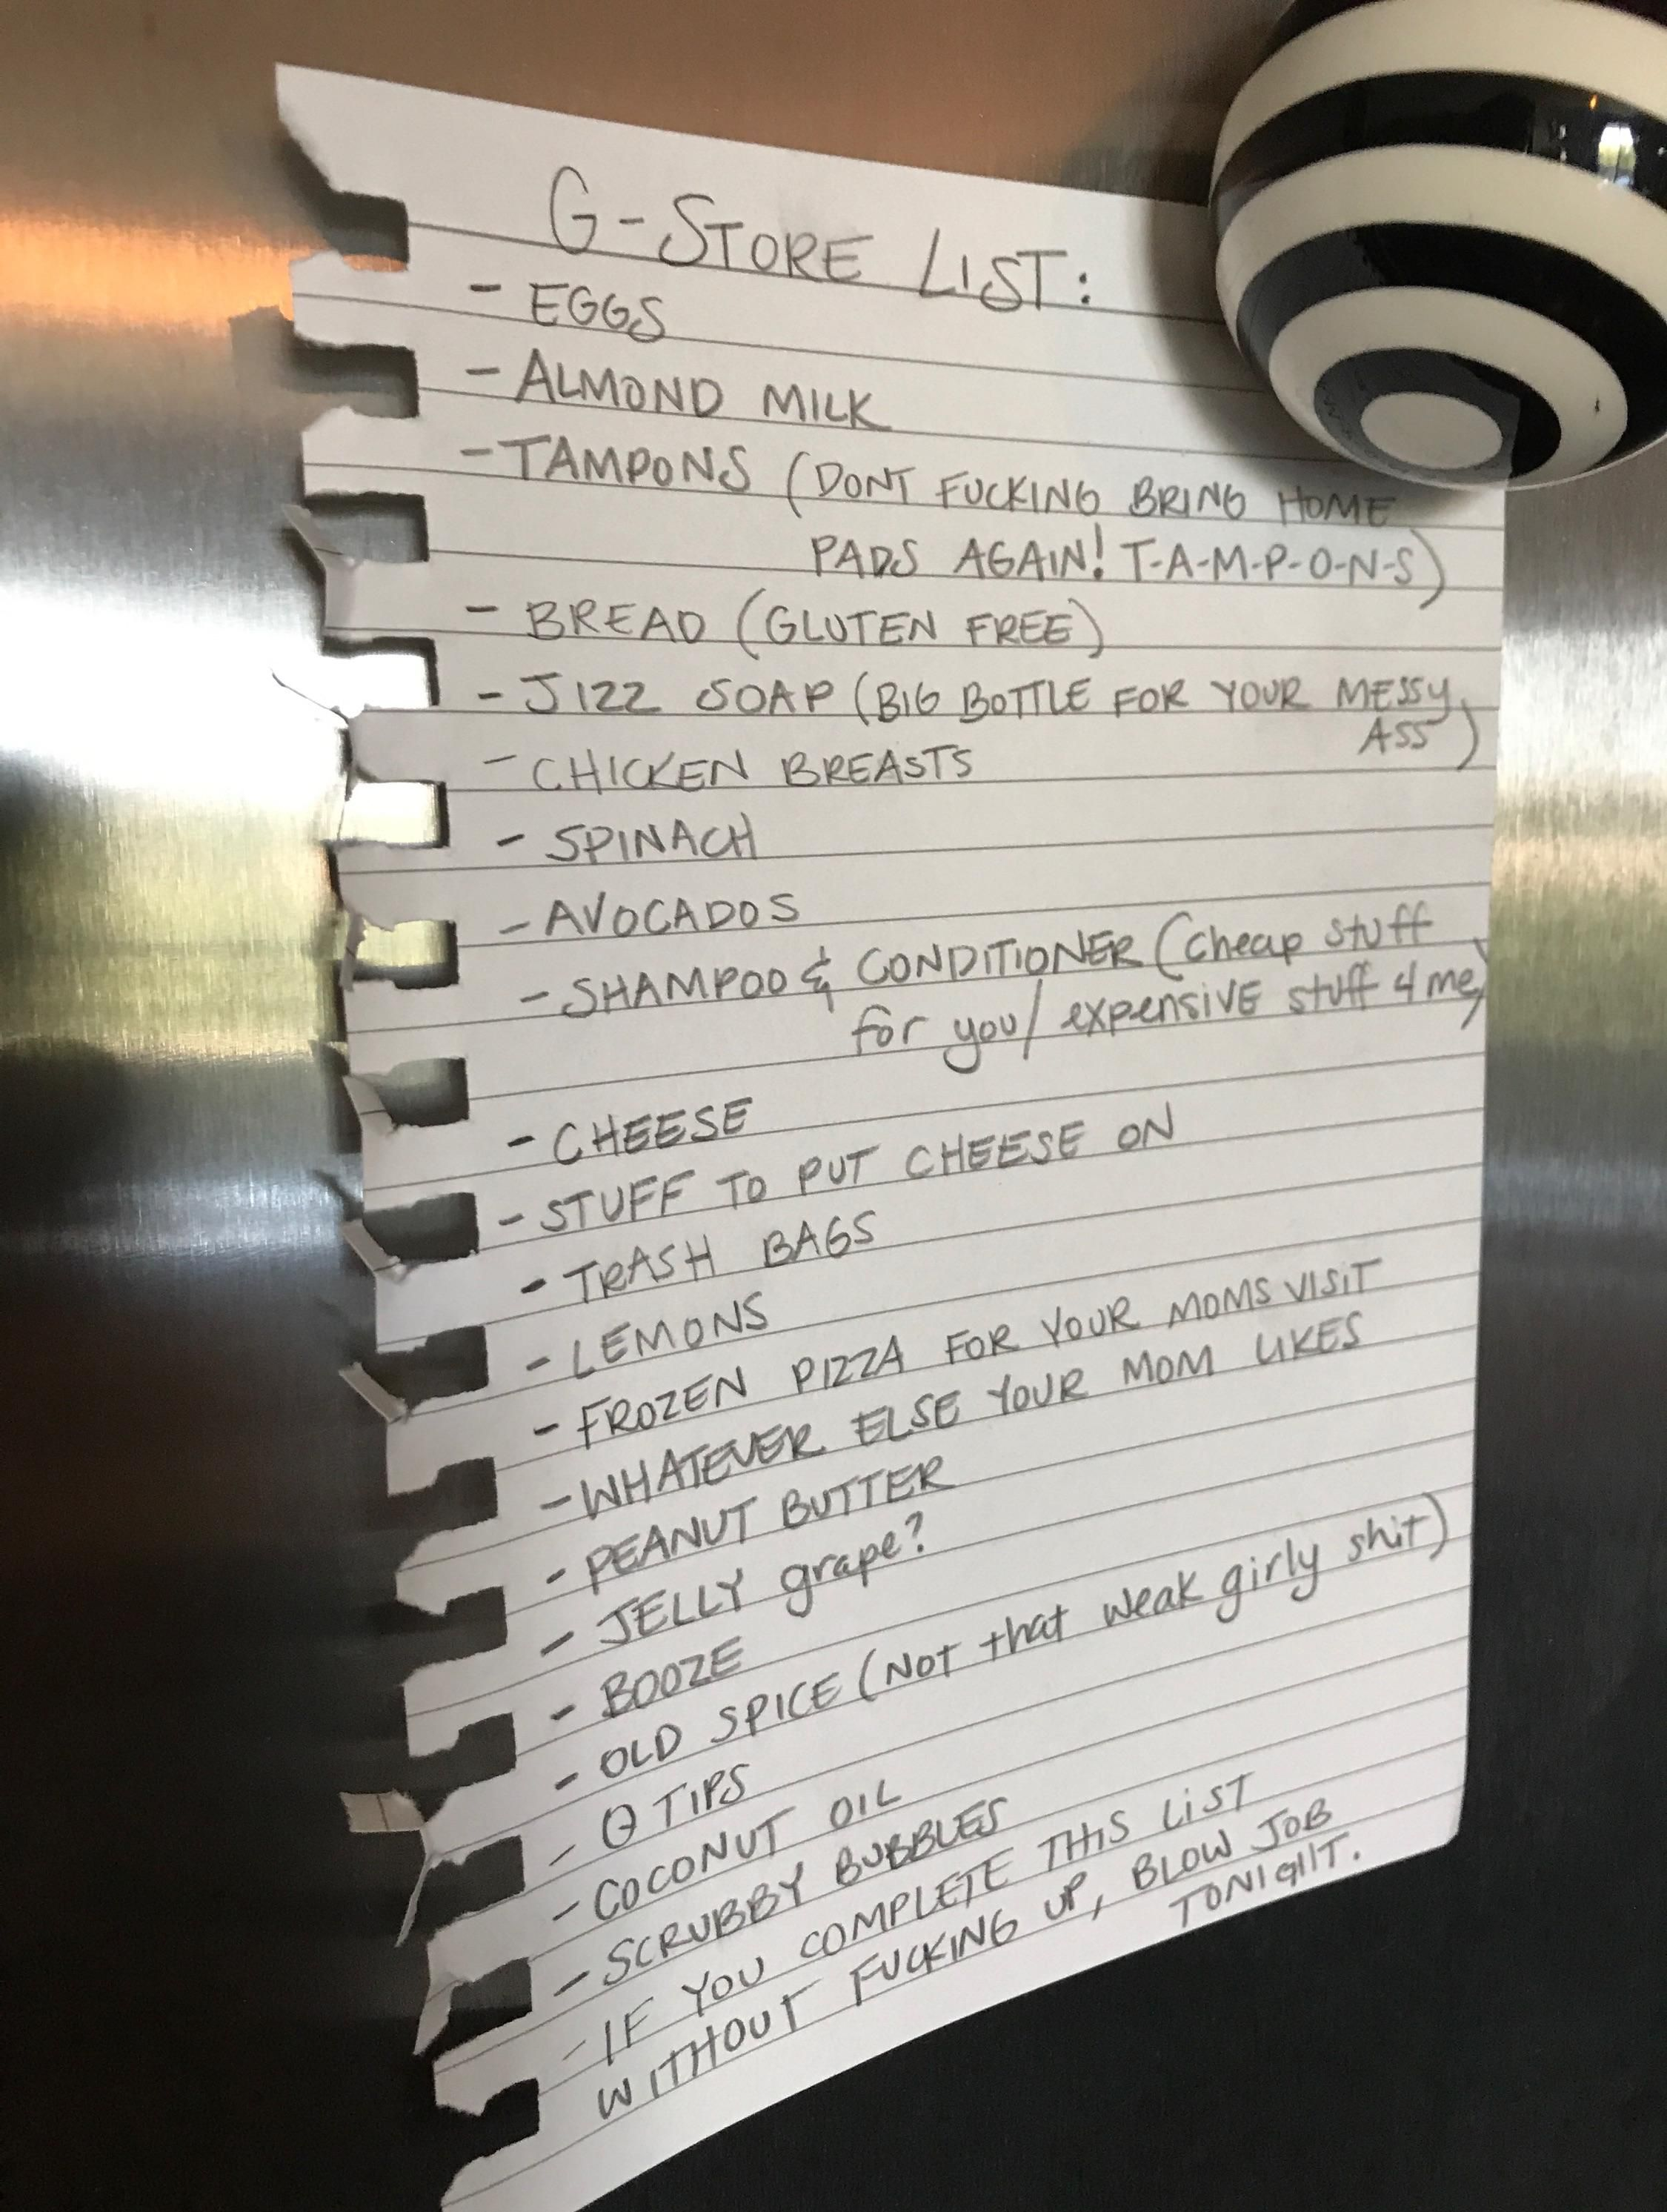 Wife left me a sexually CHARGED grocery list.